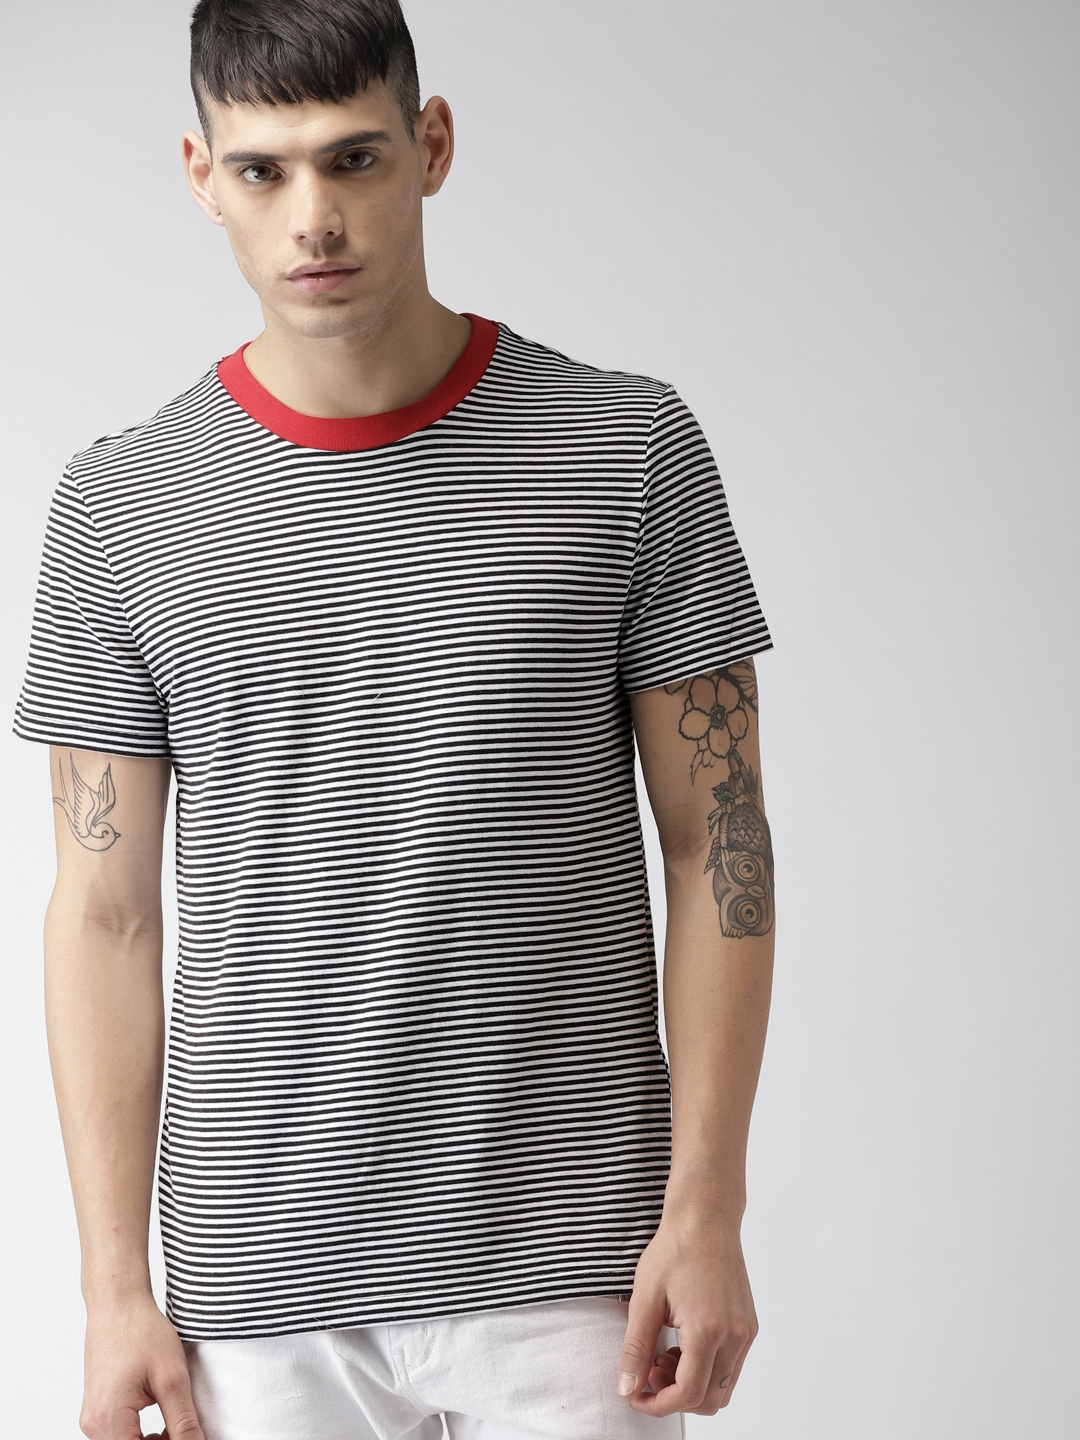 cc9e818acce4 Buy FOREVER 21 Men White & Black Striped Round Neck T Shirt ...